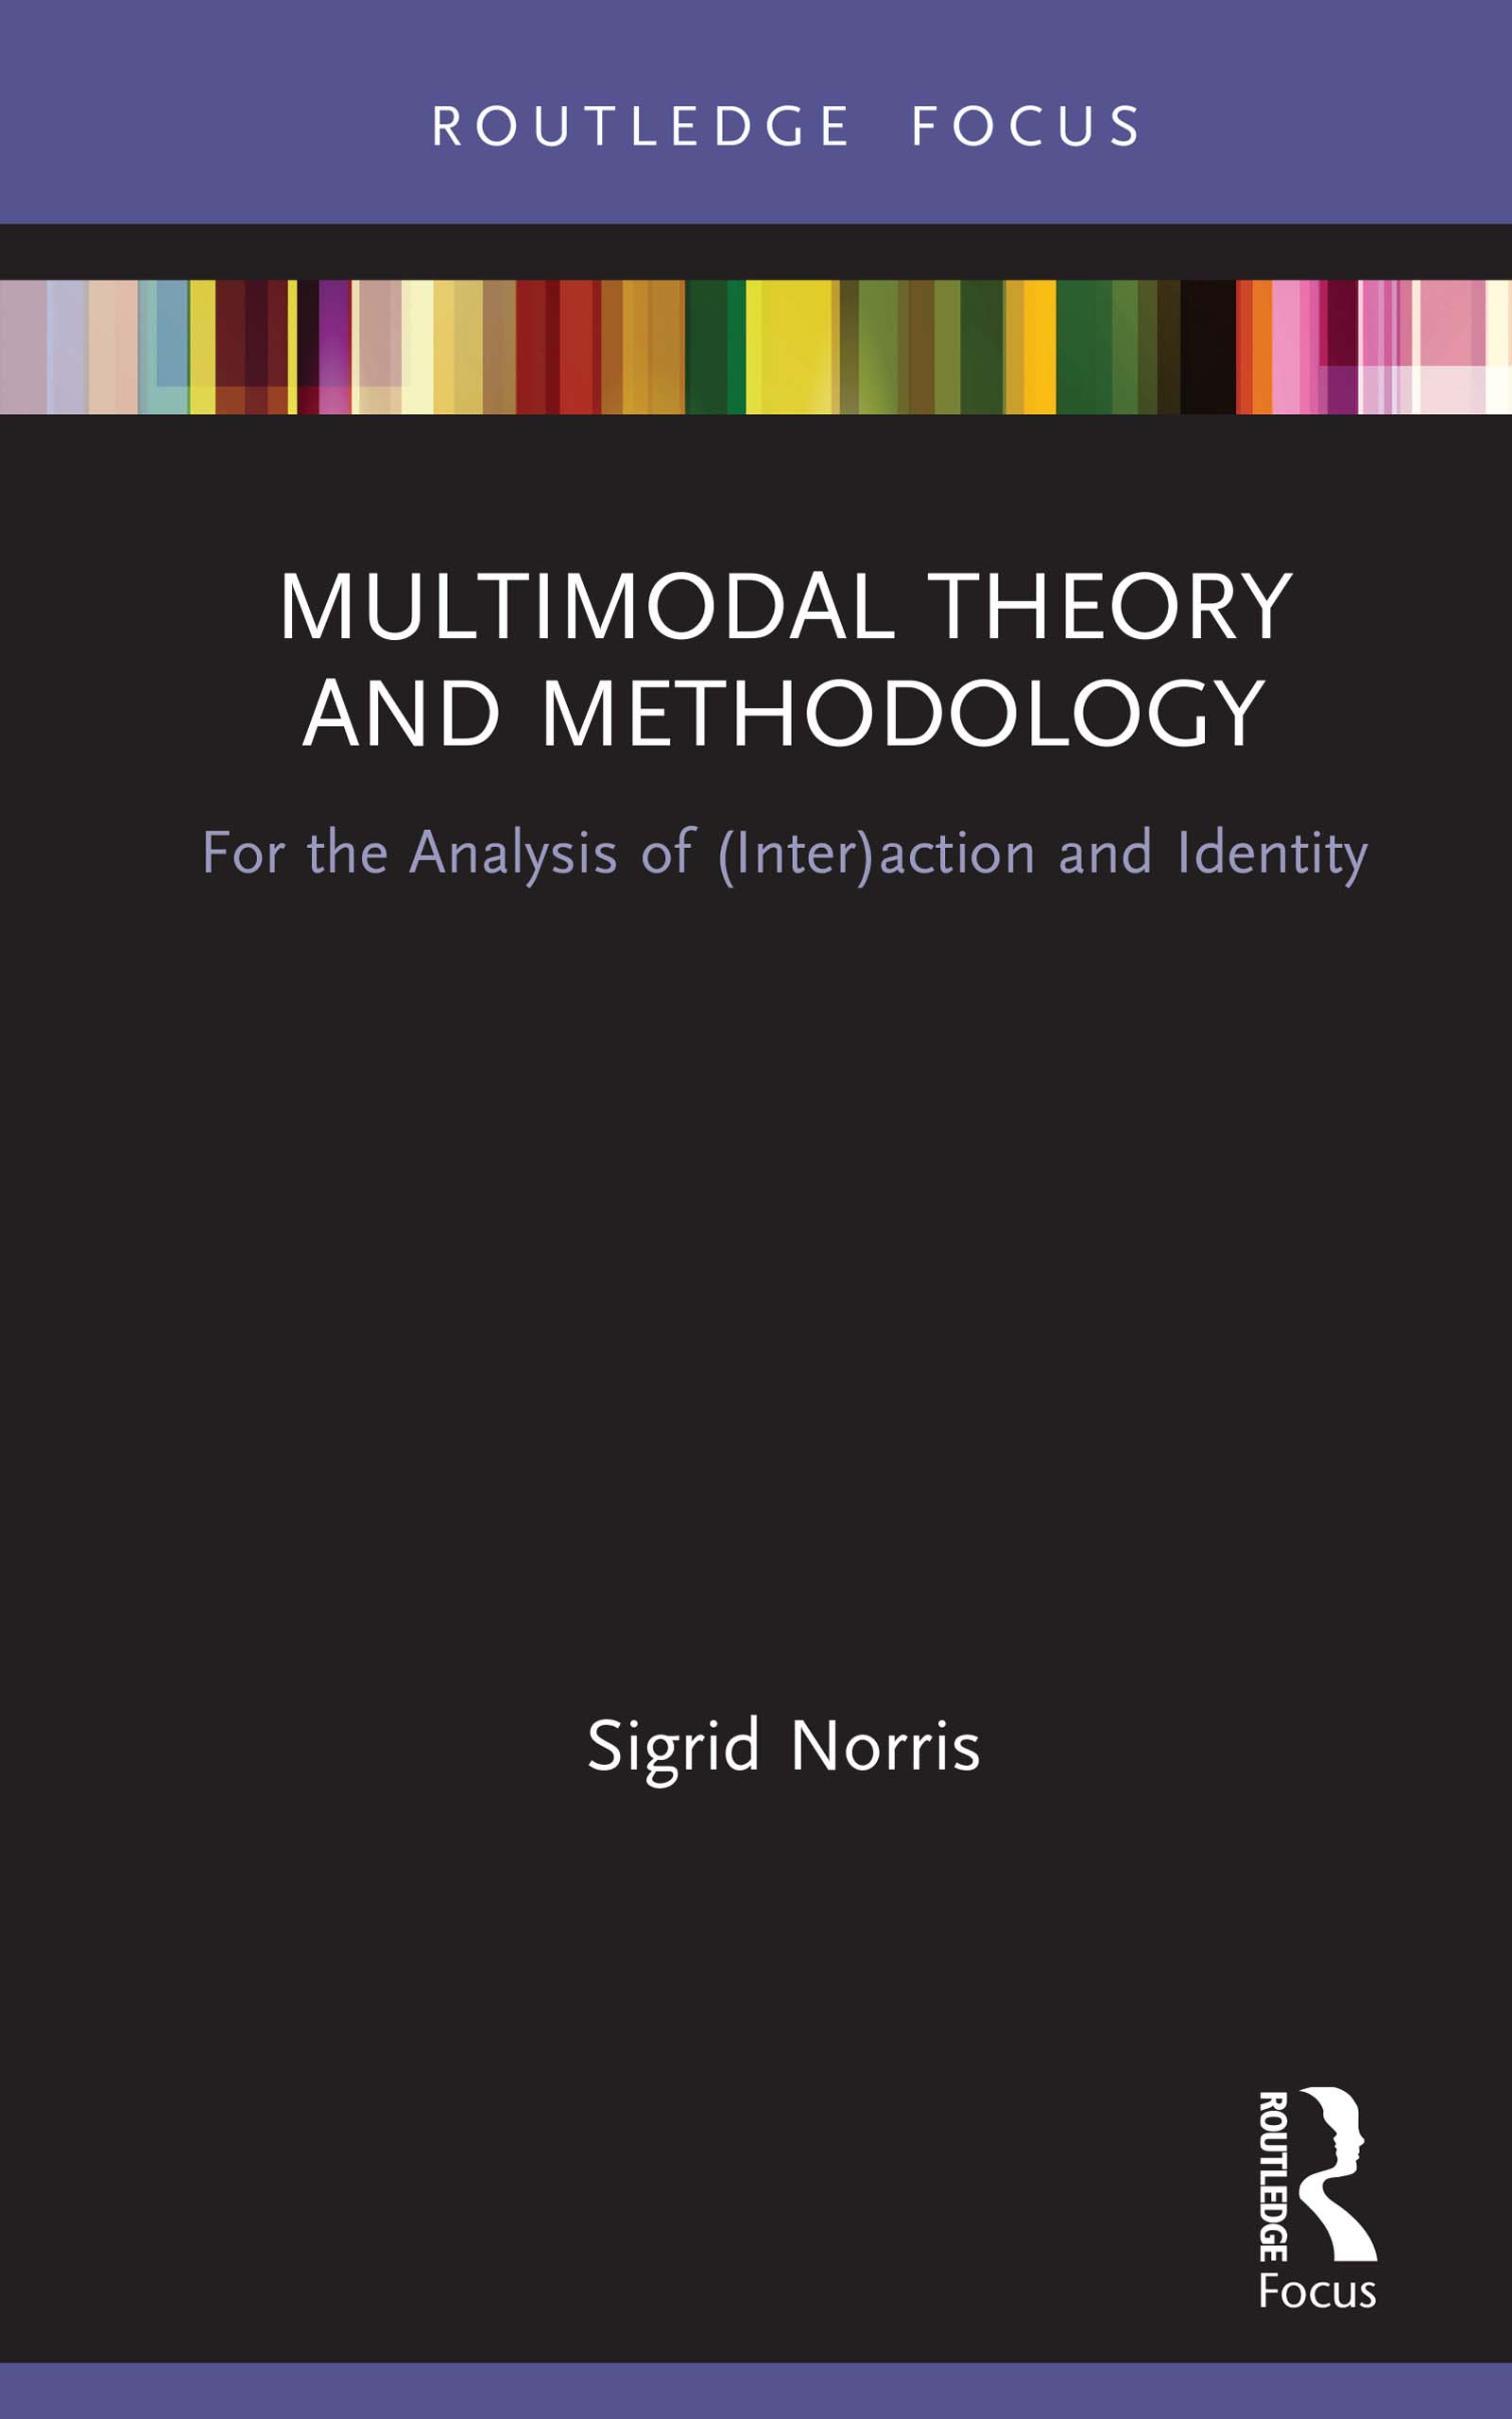 Multimodal Theory and Methodology